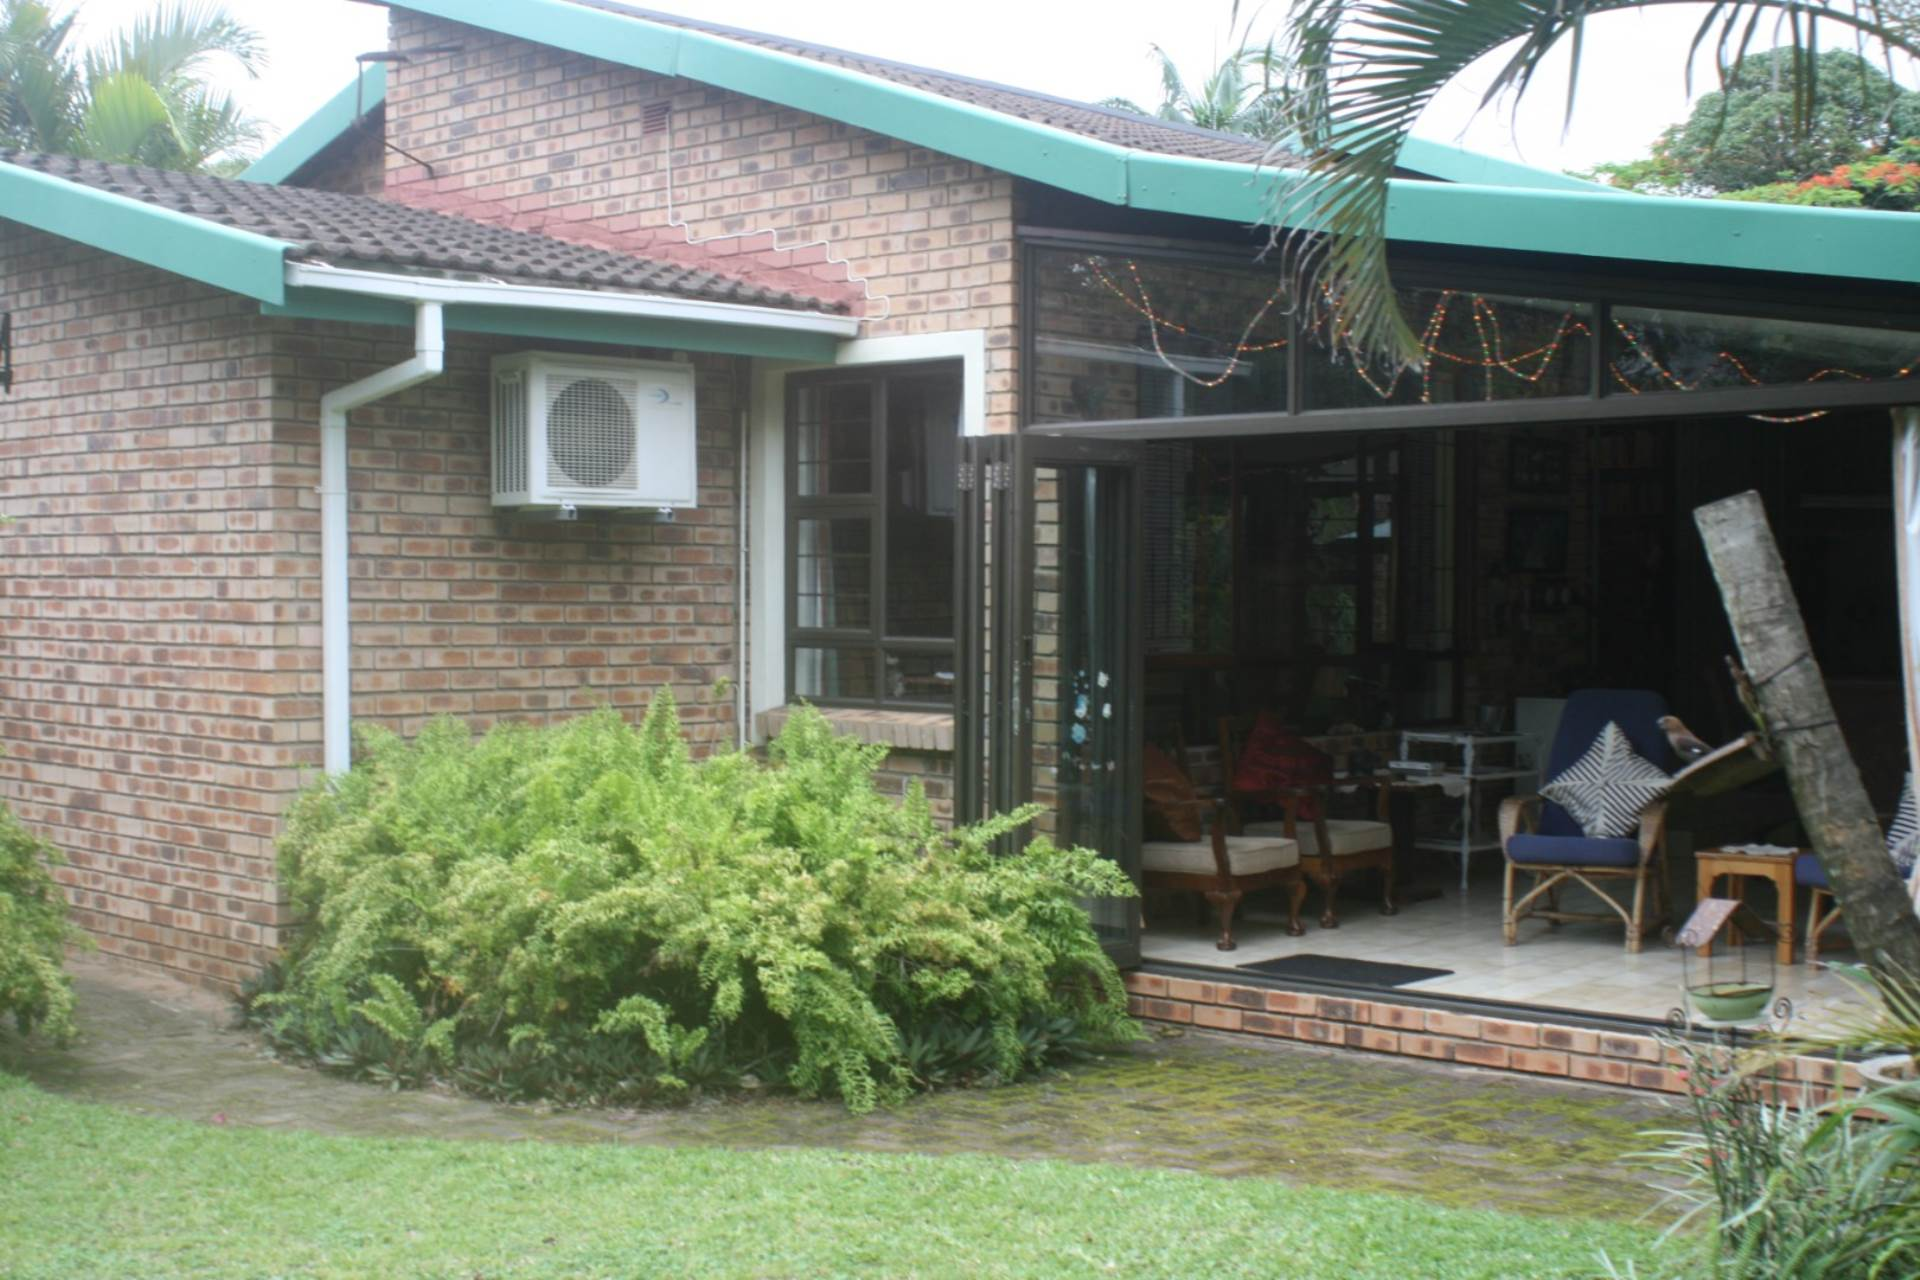 4 BedroomTownhouse For Sale In St Lucia